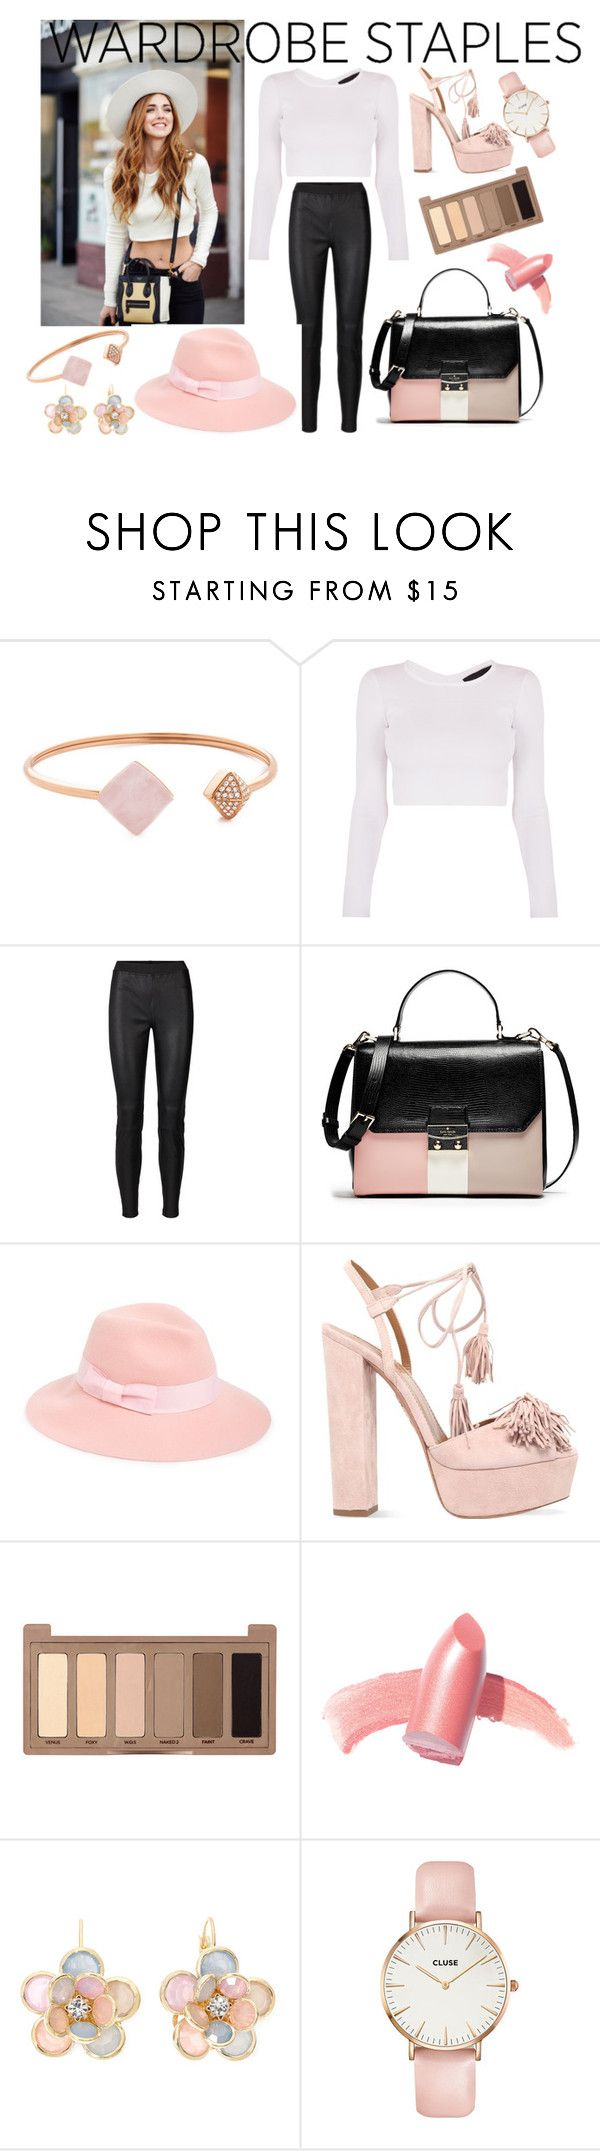 """""""#wardrobestaple2"""" by aliss90 ❤ liked on Polyvore featuring Michael Kors, August Hat, Aquazzura, Urban Decay, Elizabeth Arden, Mixit, CLUSE and WardrobeStaple"""